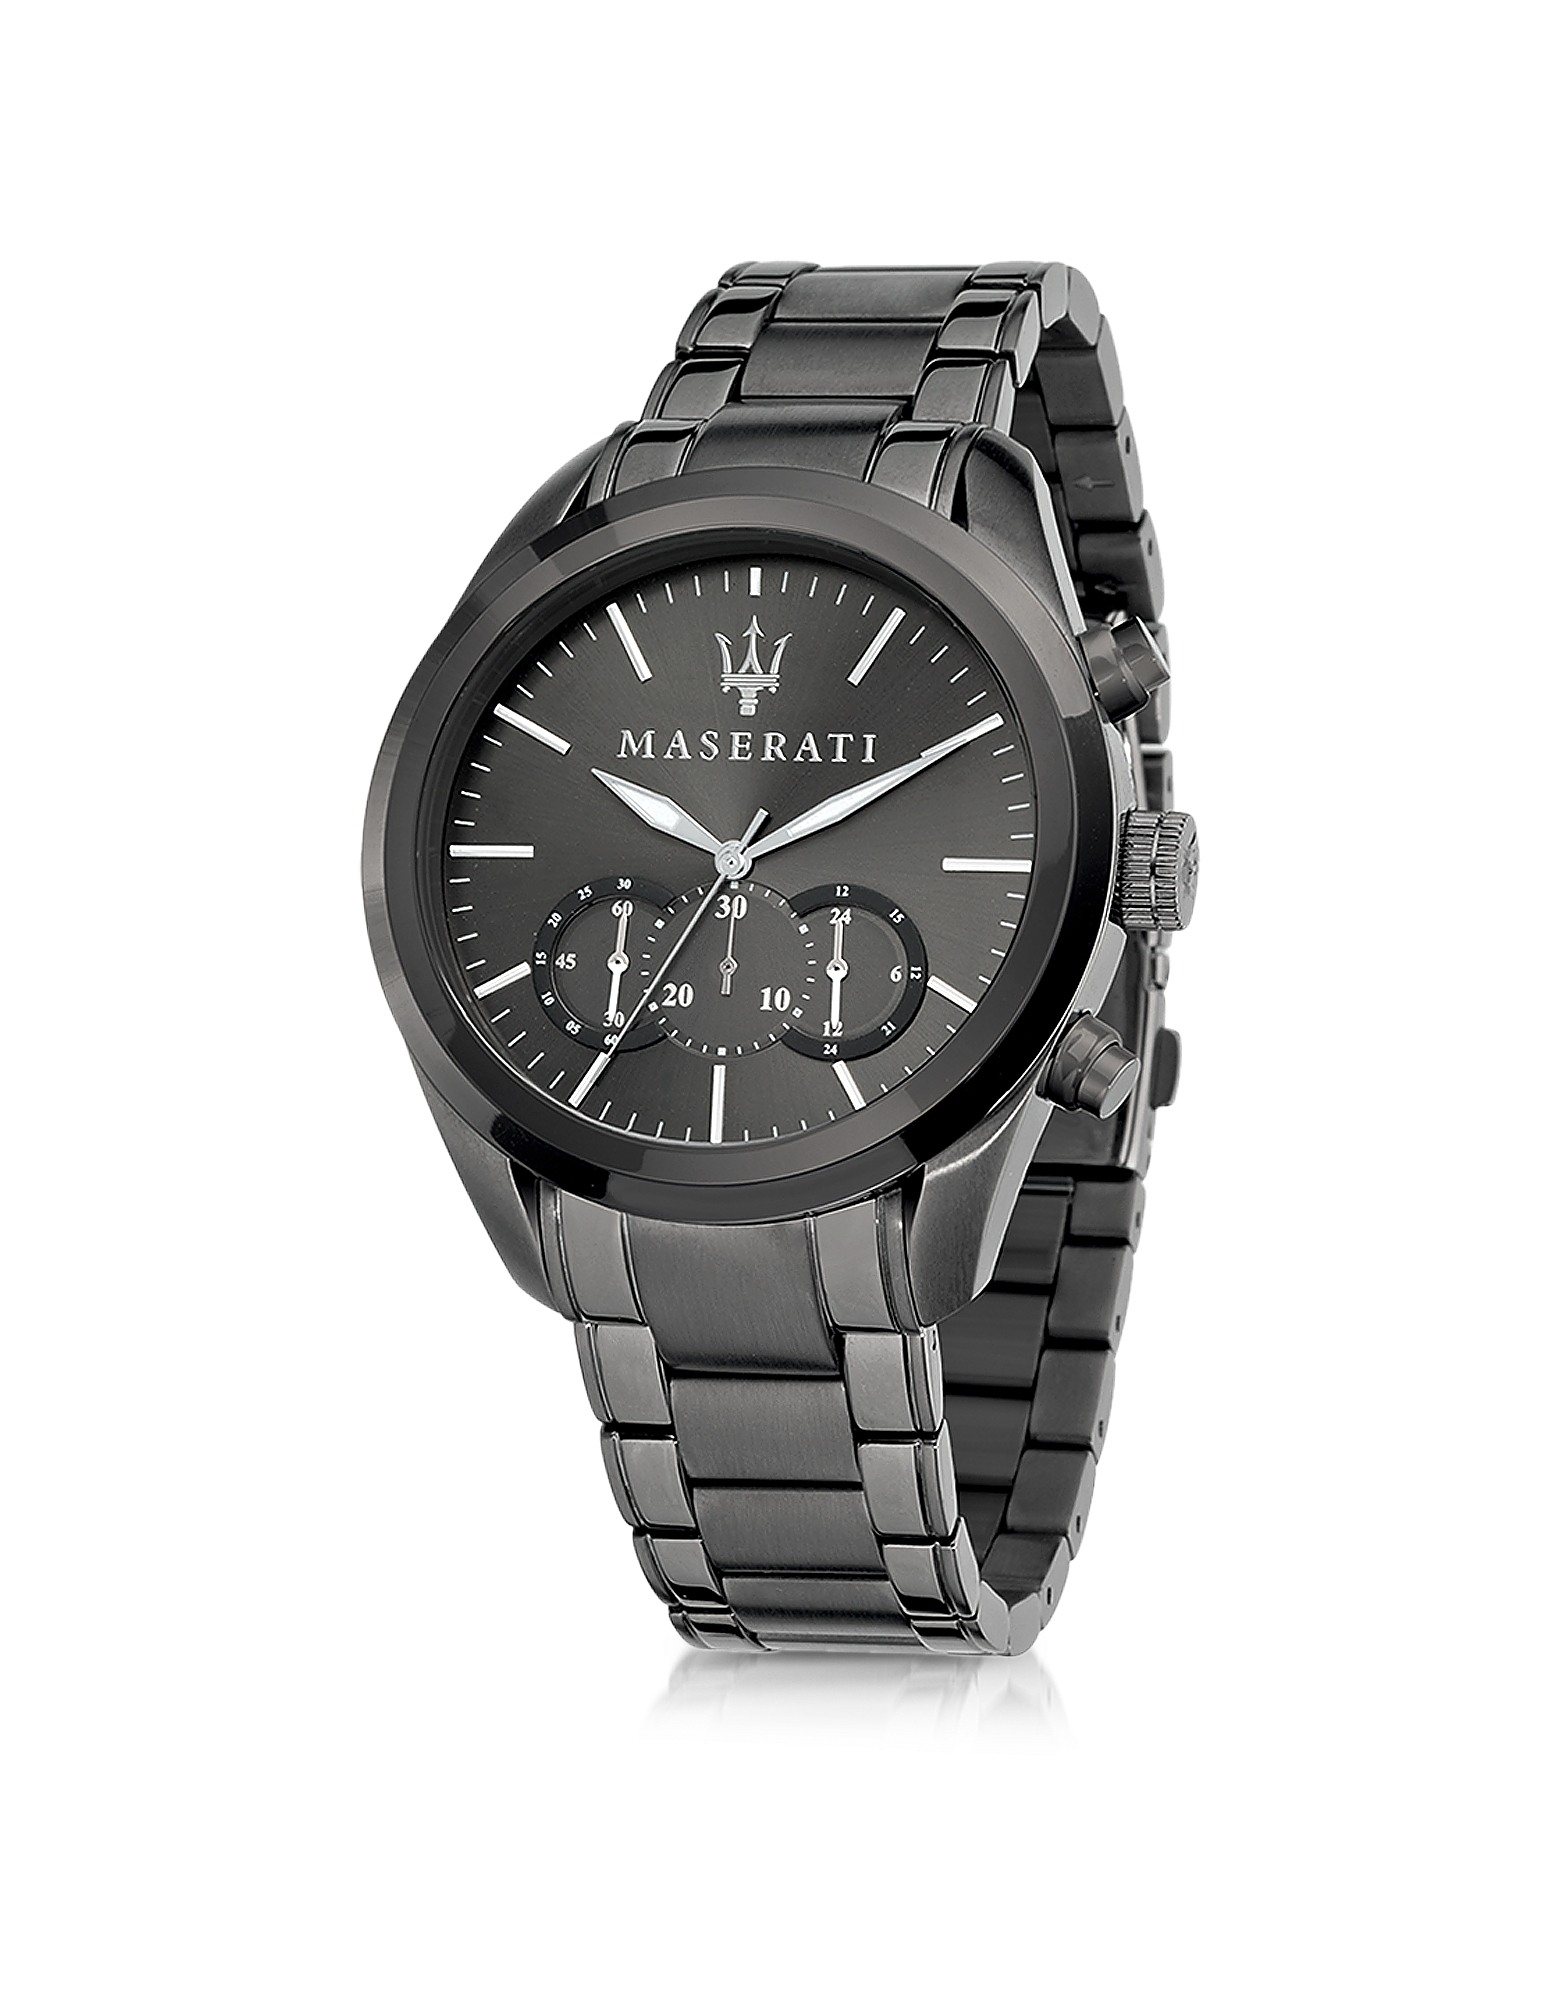 Maserati Men's Watches, Pole Position Gunmetal PVD Stainless Steel Men's Watch